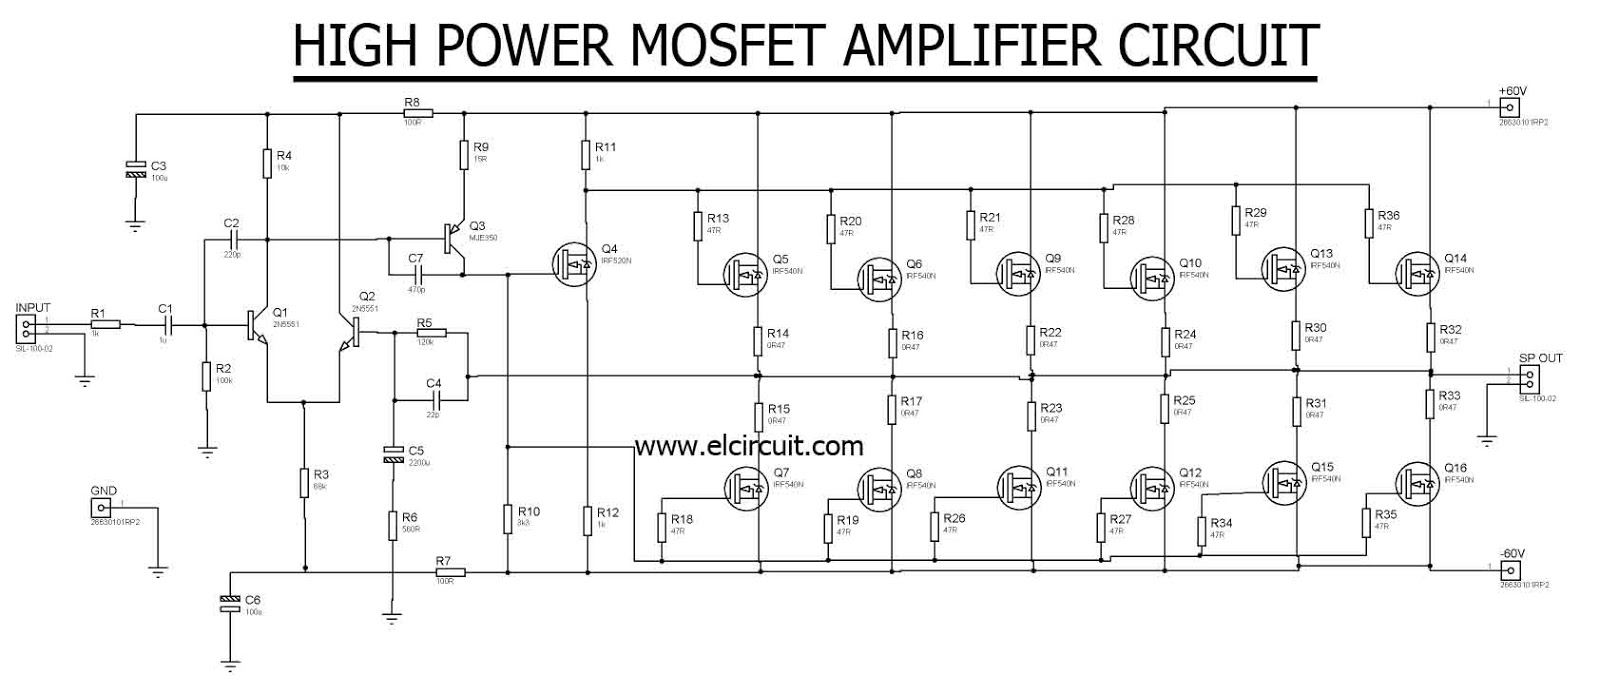 small resolution of high power mosfet amplifier irf540n electronic circuit schematic diagram circuit of high power amplifier high power amplifier circuit diagram